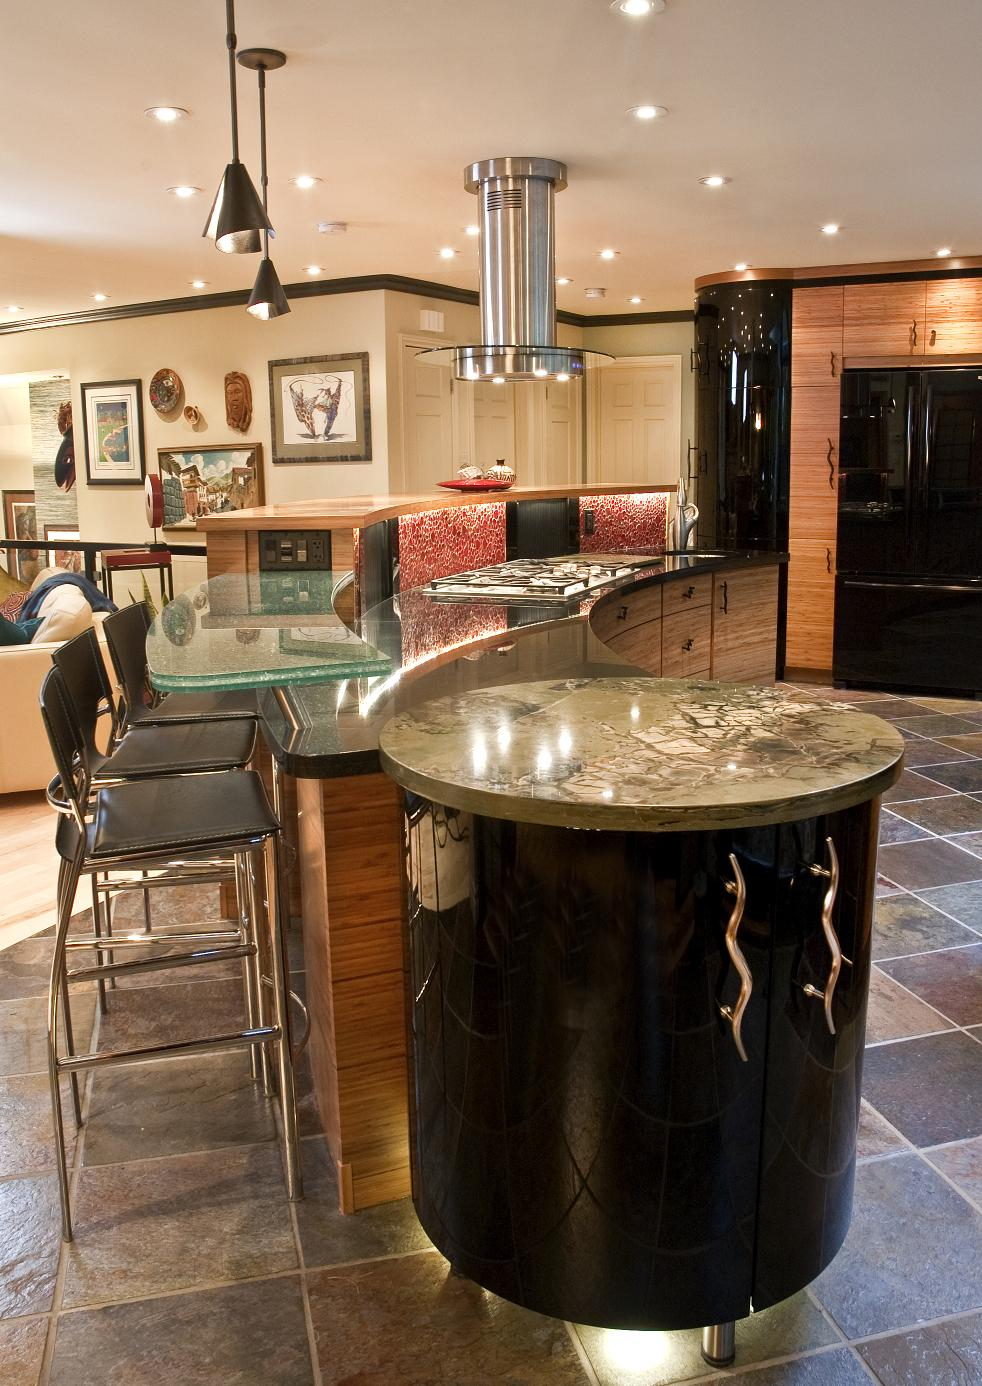 Eclectic kitchen design with round island